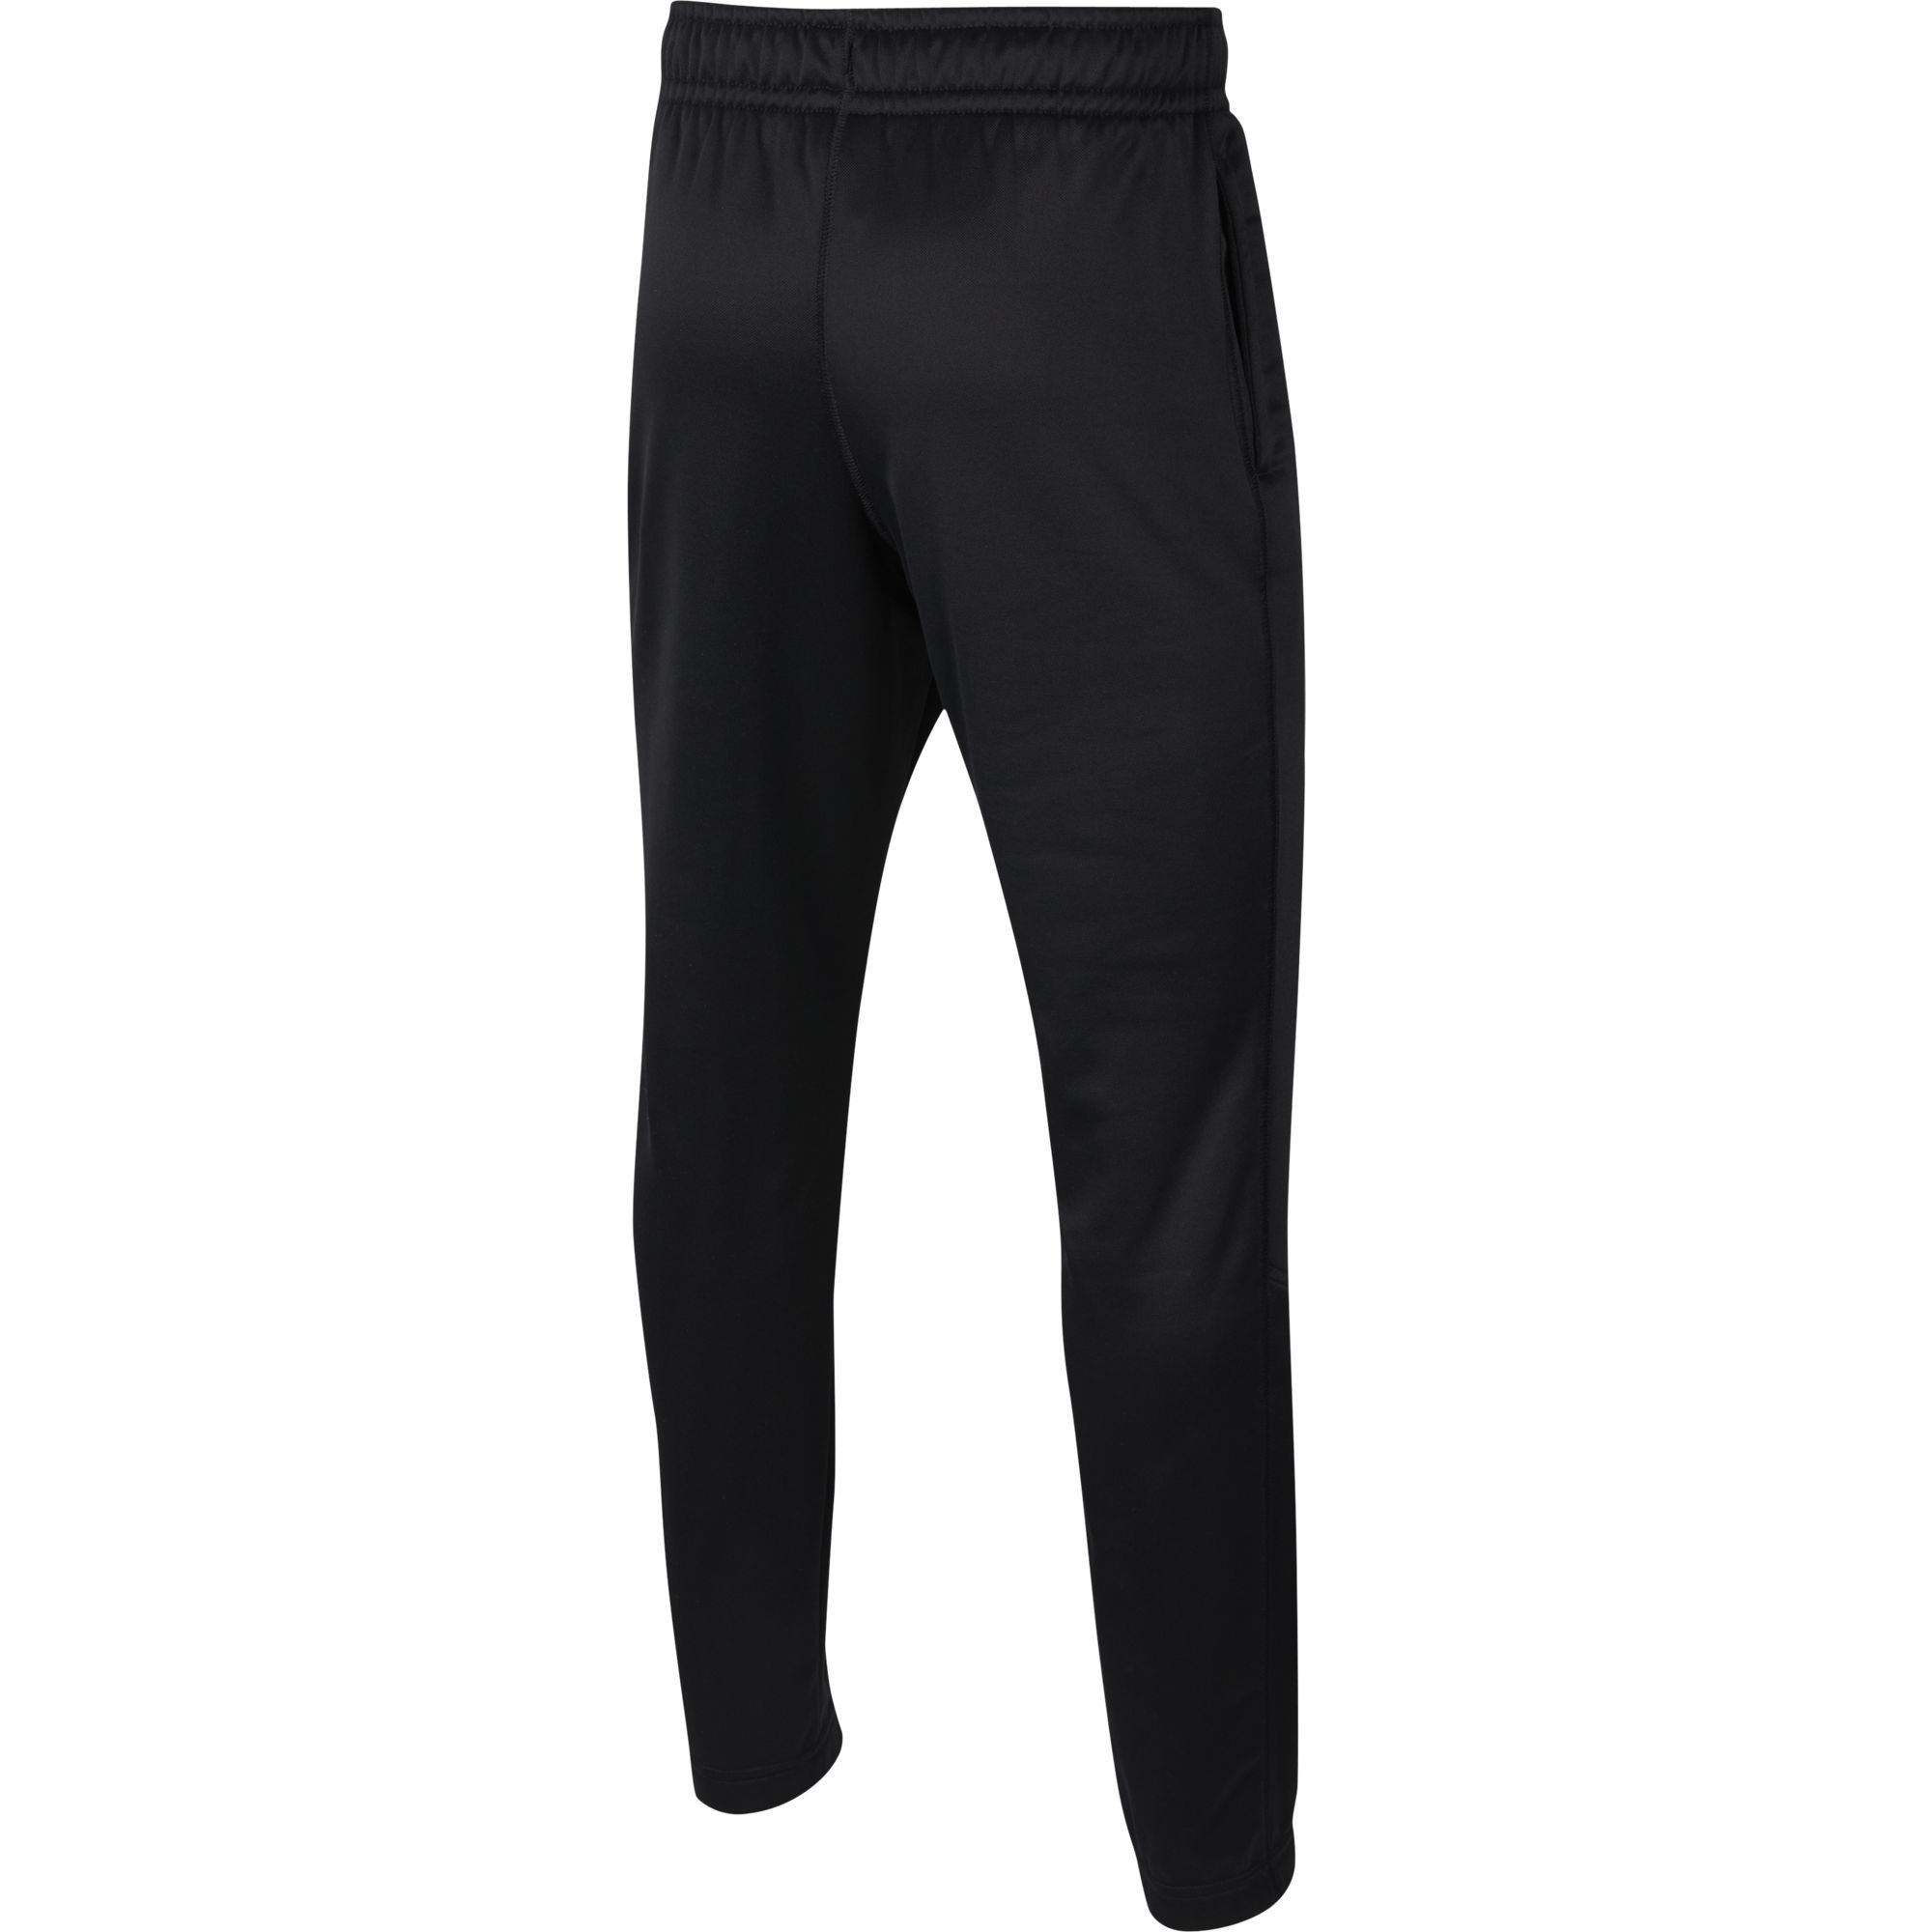 Boys' Therma GFX Tapered Jogger Pants, Black, swatch